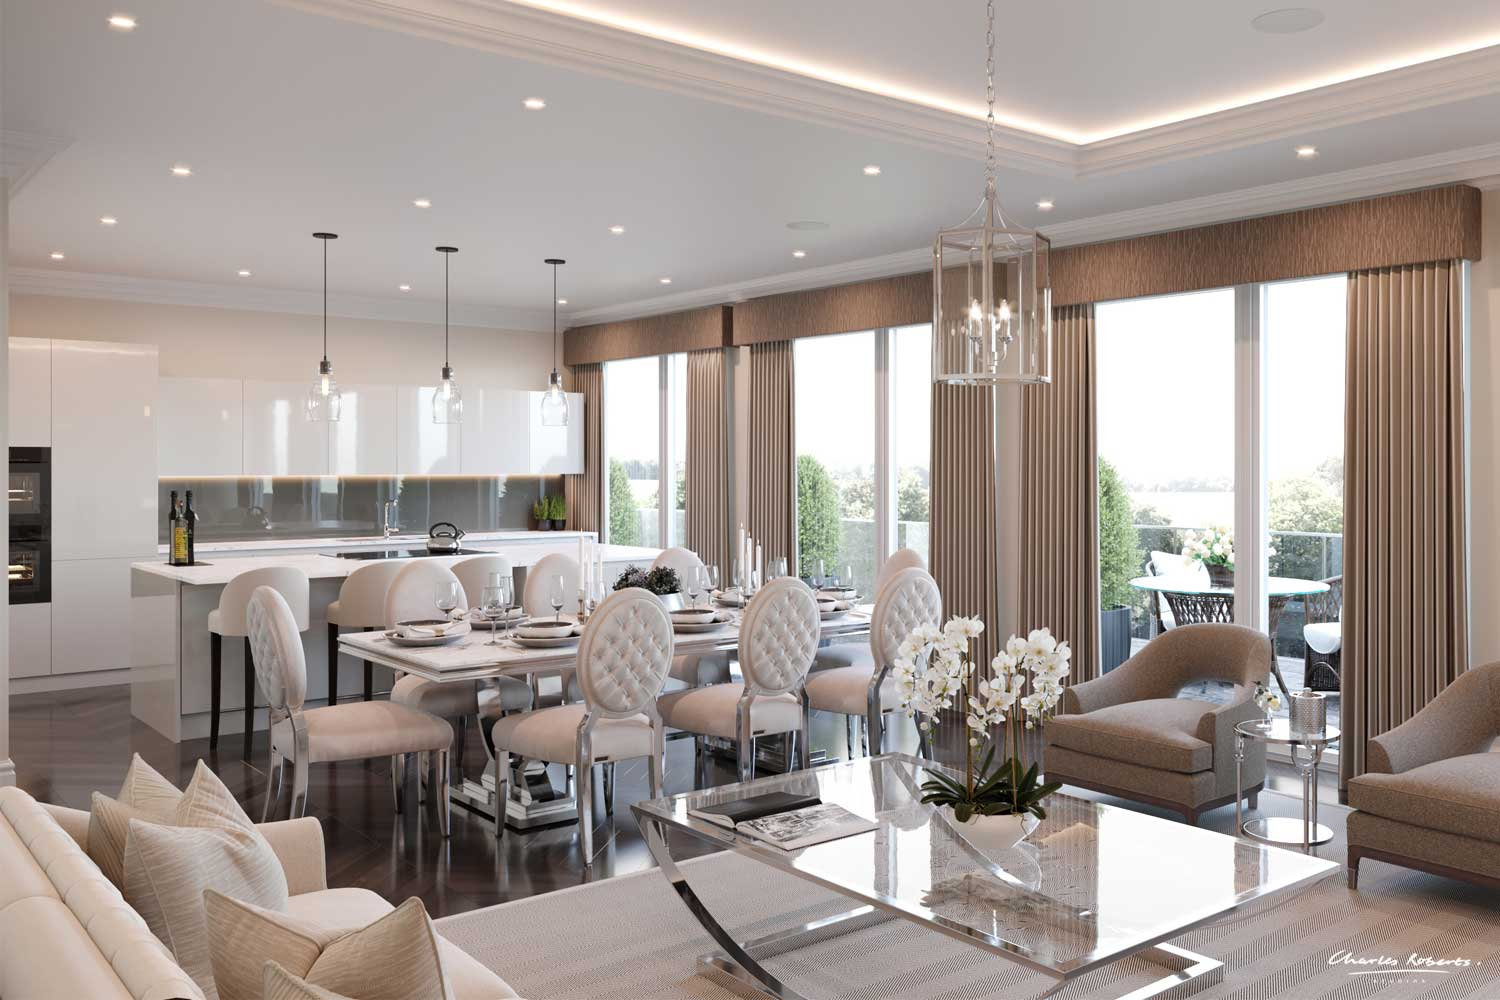 Property-CGI-luxury-kitchen-and-dining-room.jpg